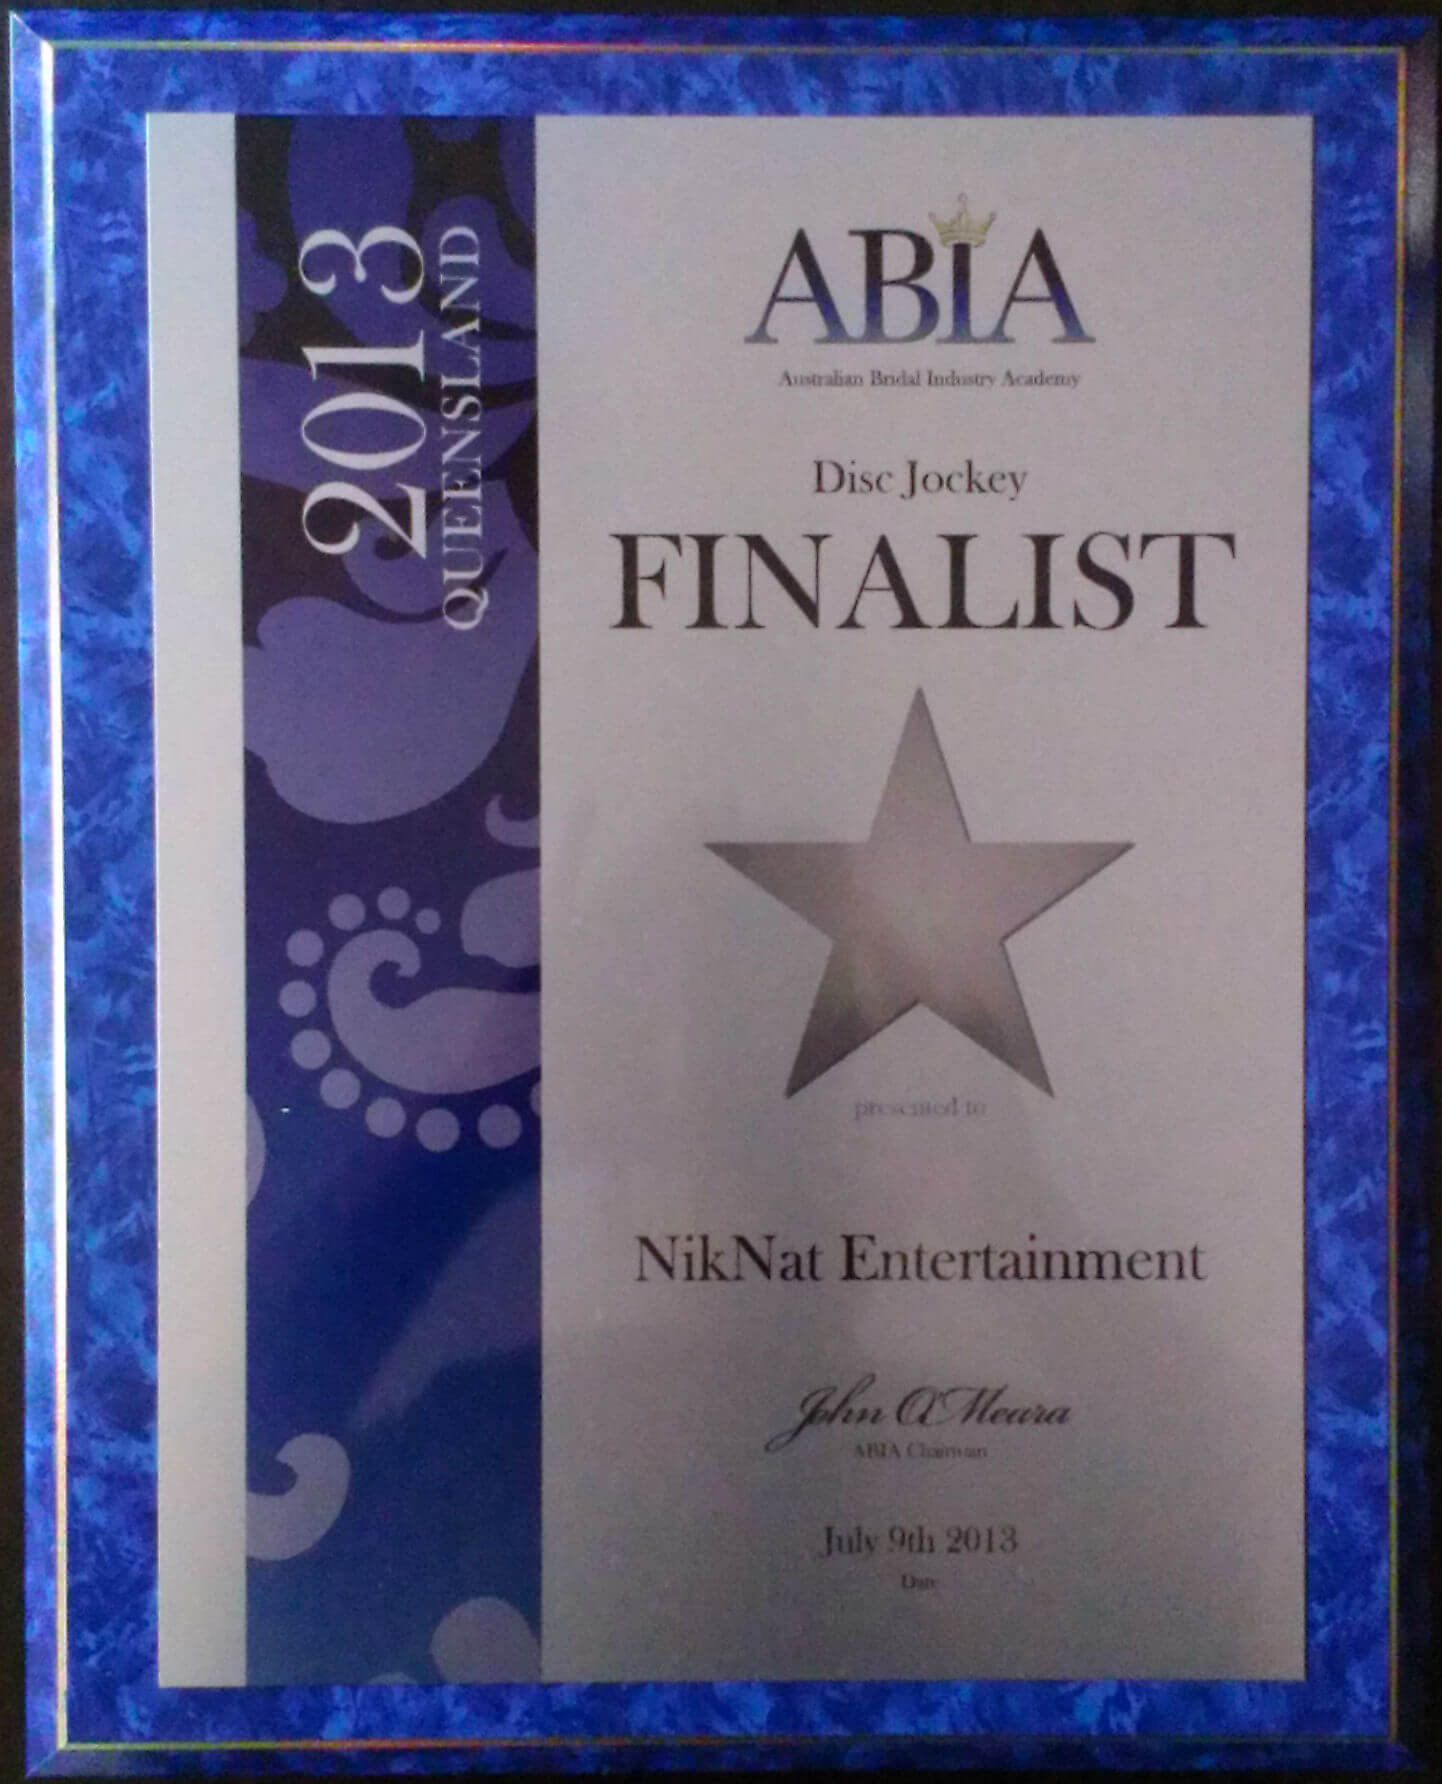 NikNat Entertainment's ABIA Award 2013